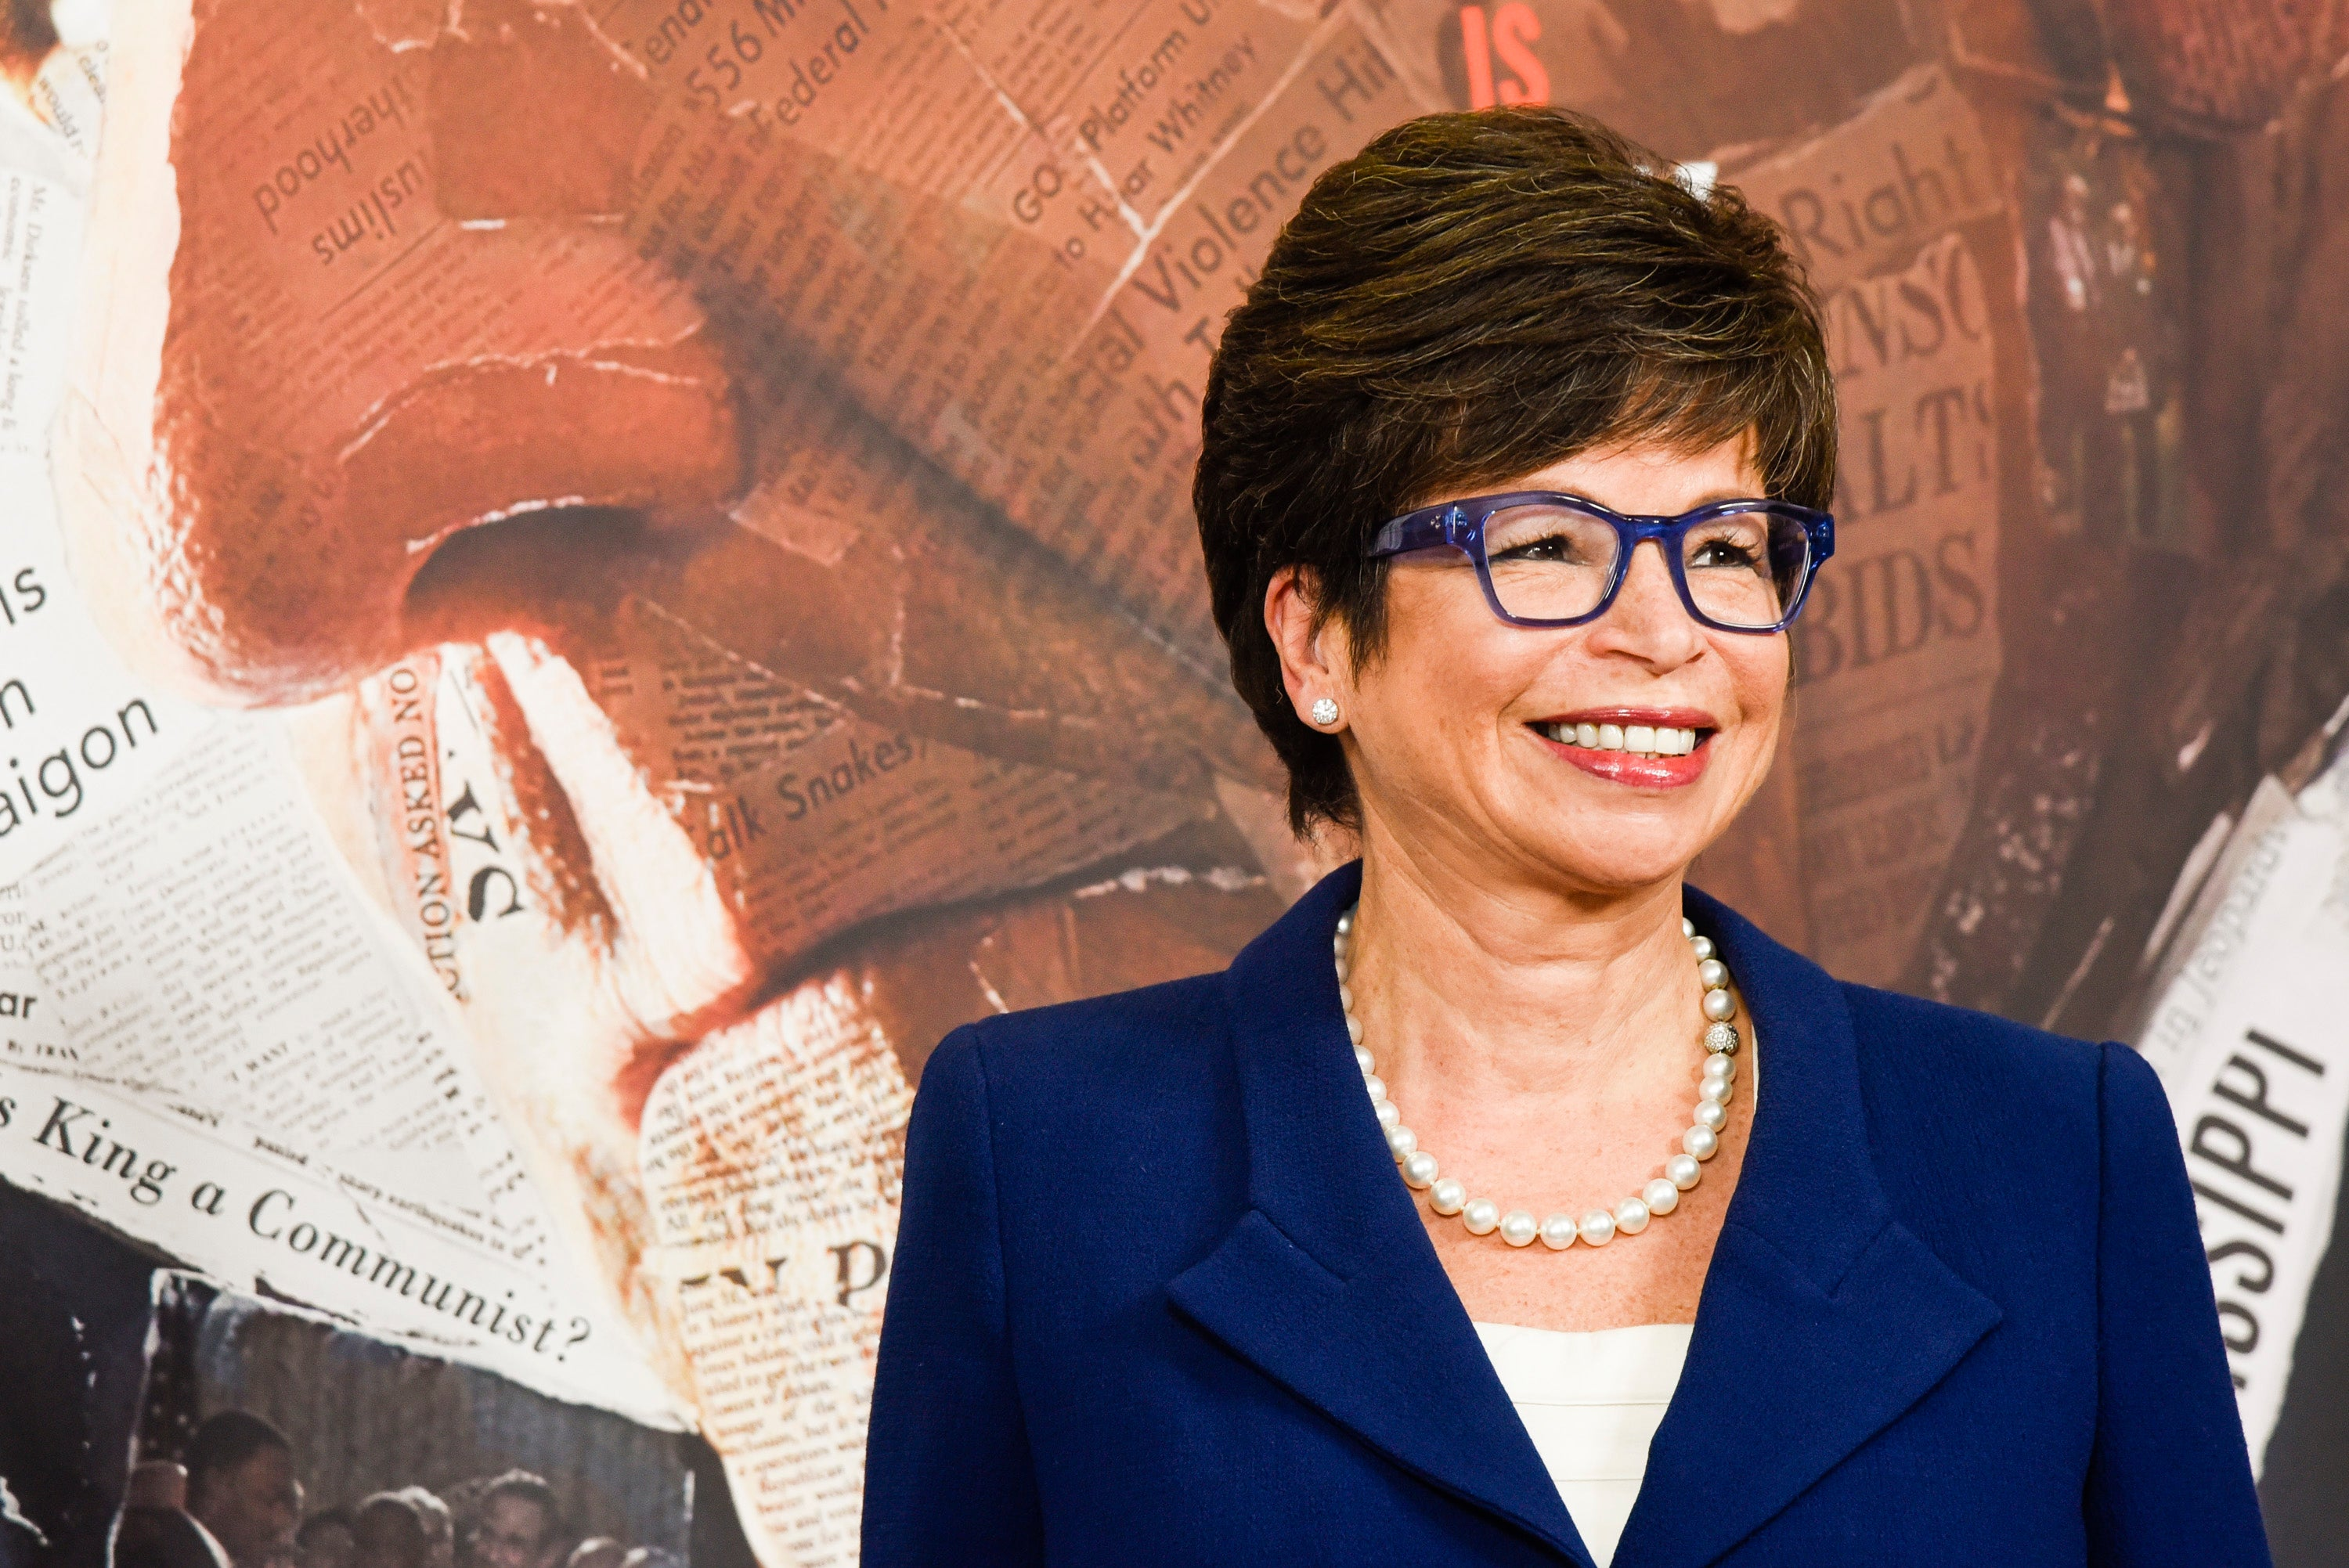 How Valerie Jarrett Is Giving Women, Activists The Tools To Hold Political Office